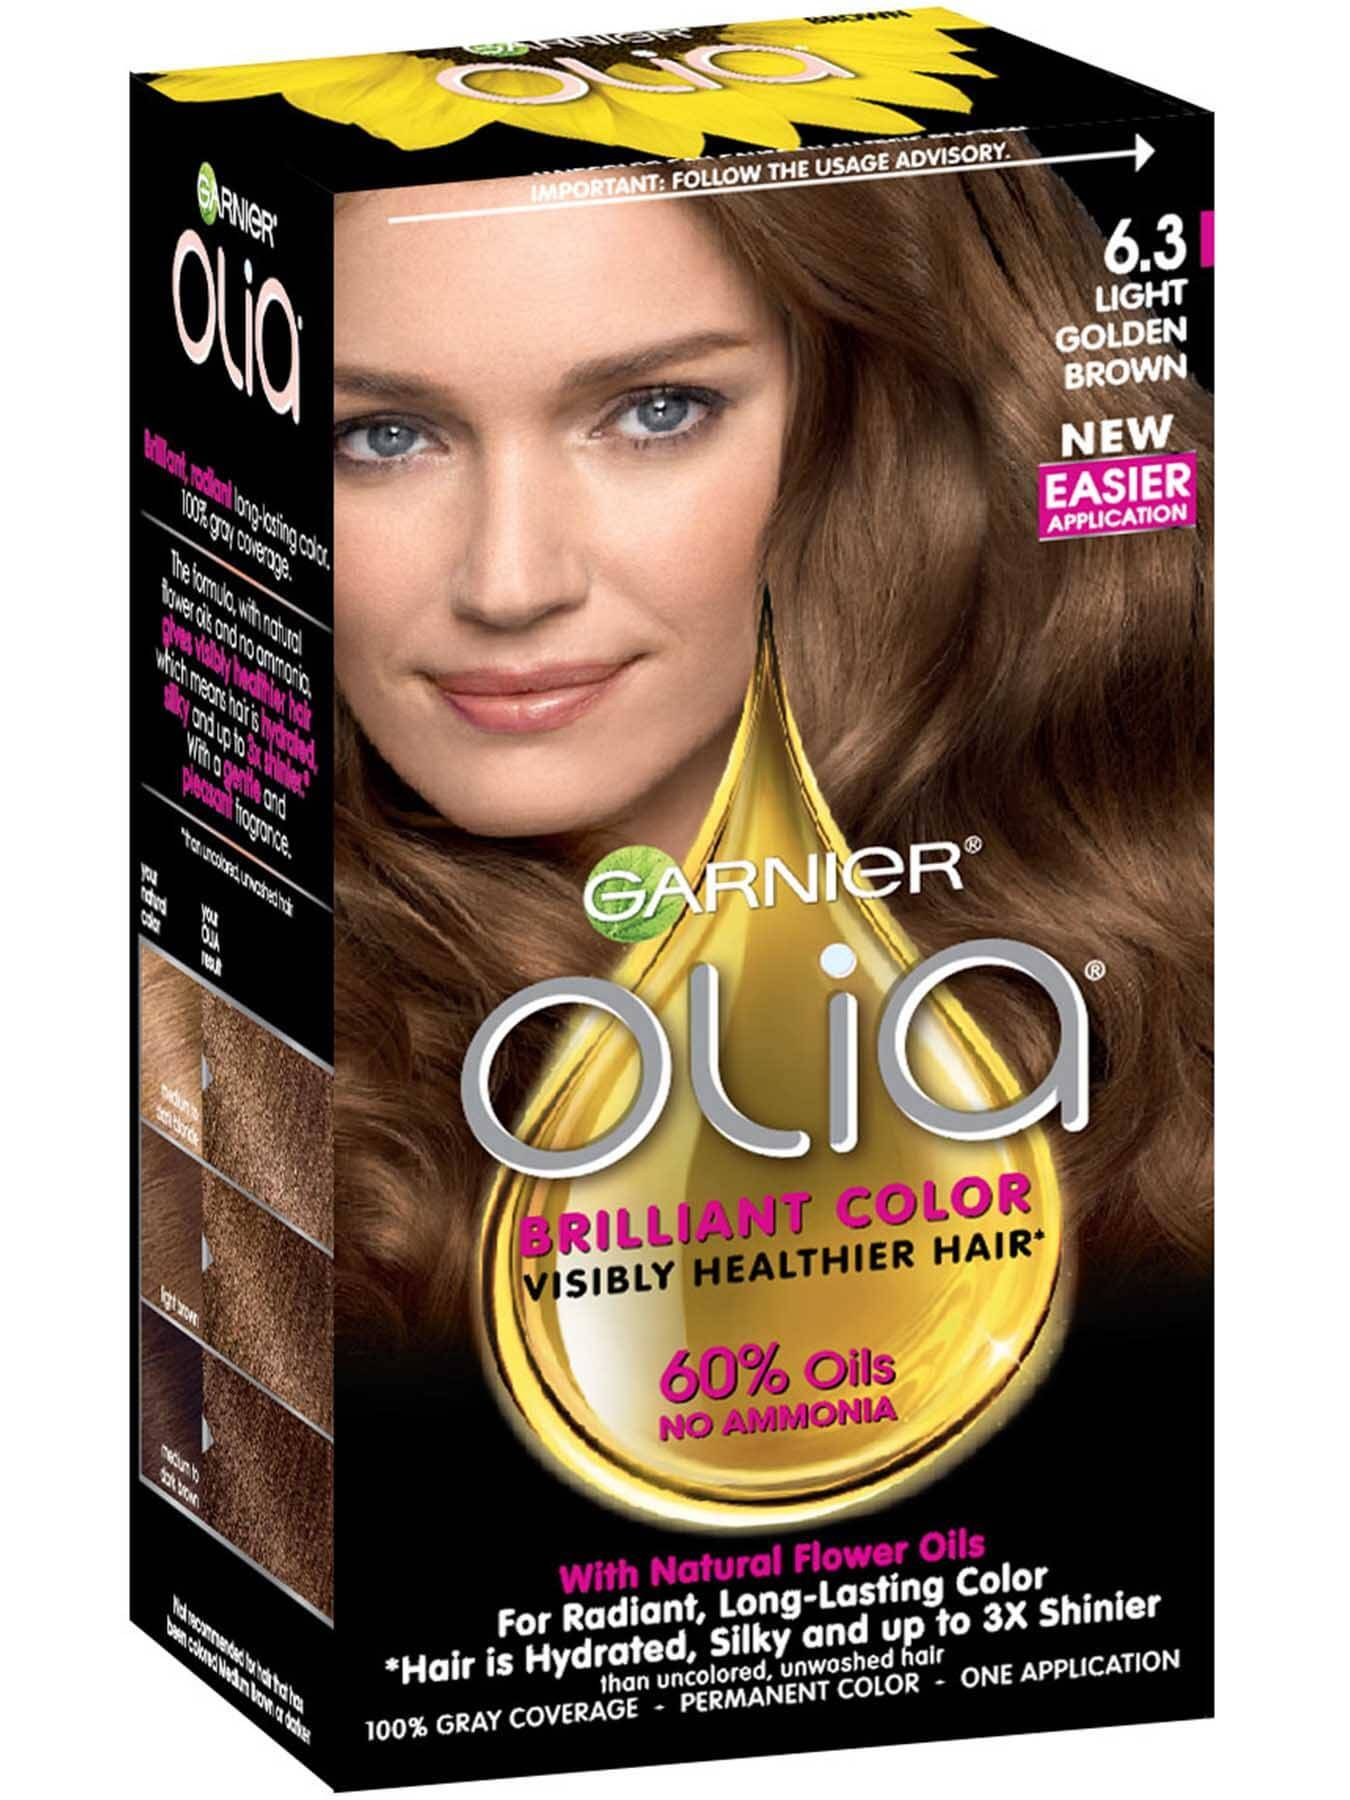 Garnier Olia hair color productshot 6-3 light golden brown shade P0190 packshot